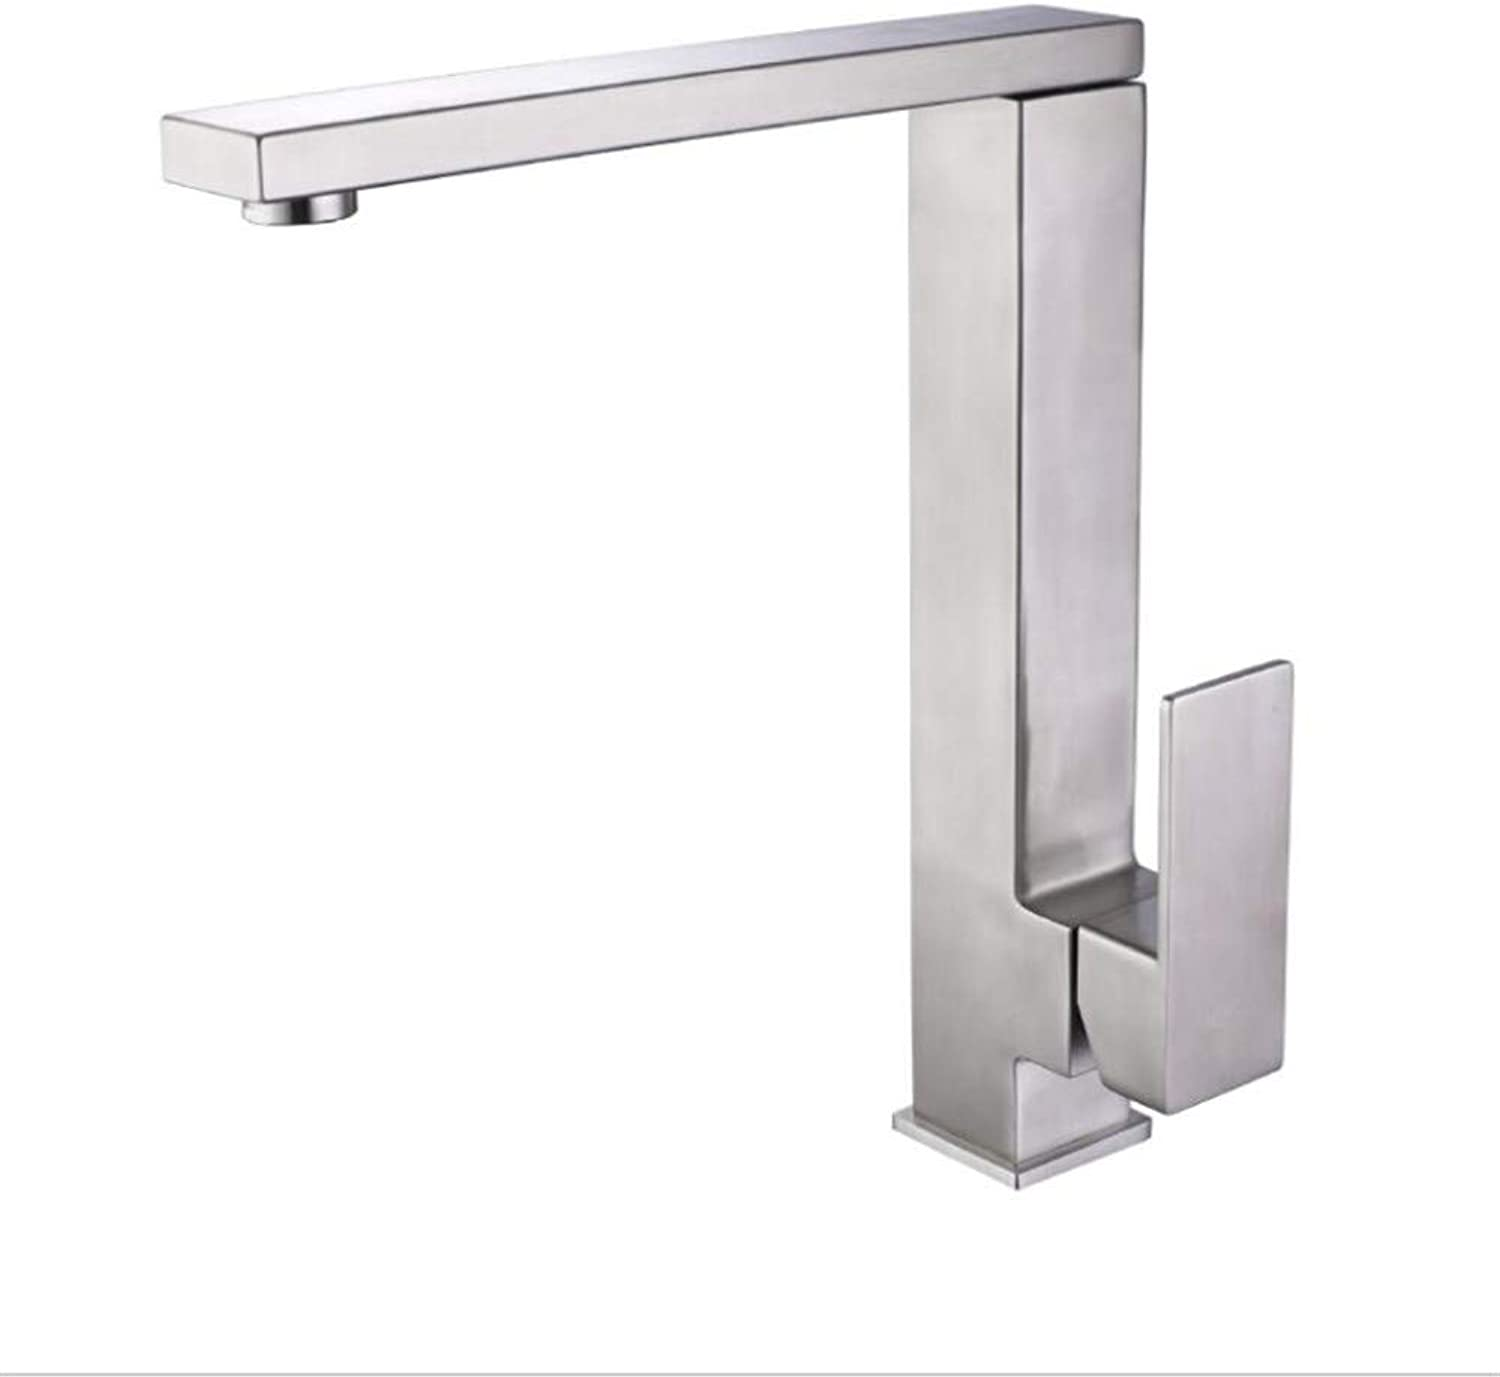 Modernsltbathroom Sink Basin Lever Mixer Tap Cool and Hot Water Faucet Kitchen Square Faucet 304 Vegetable Basin Faucet Hot and Cold